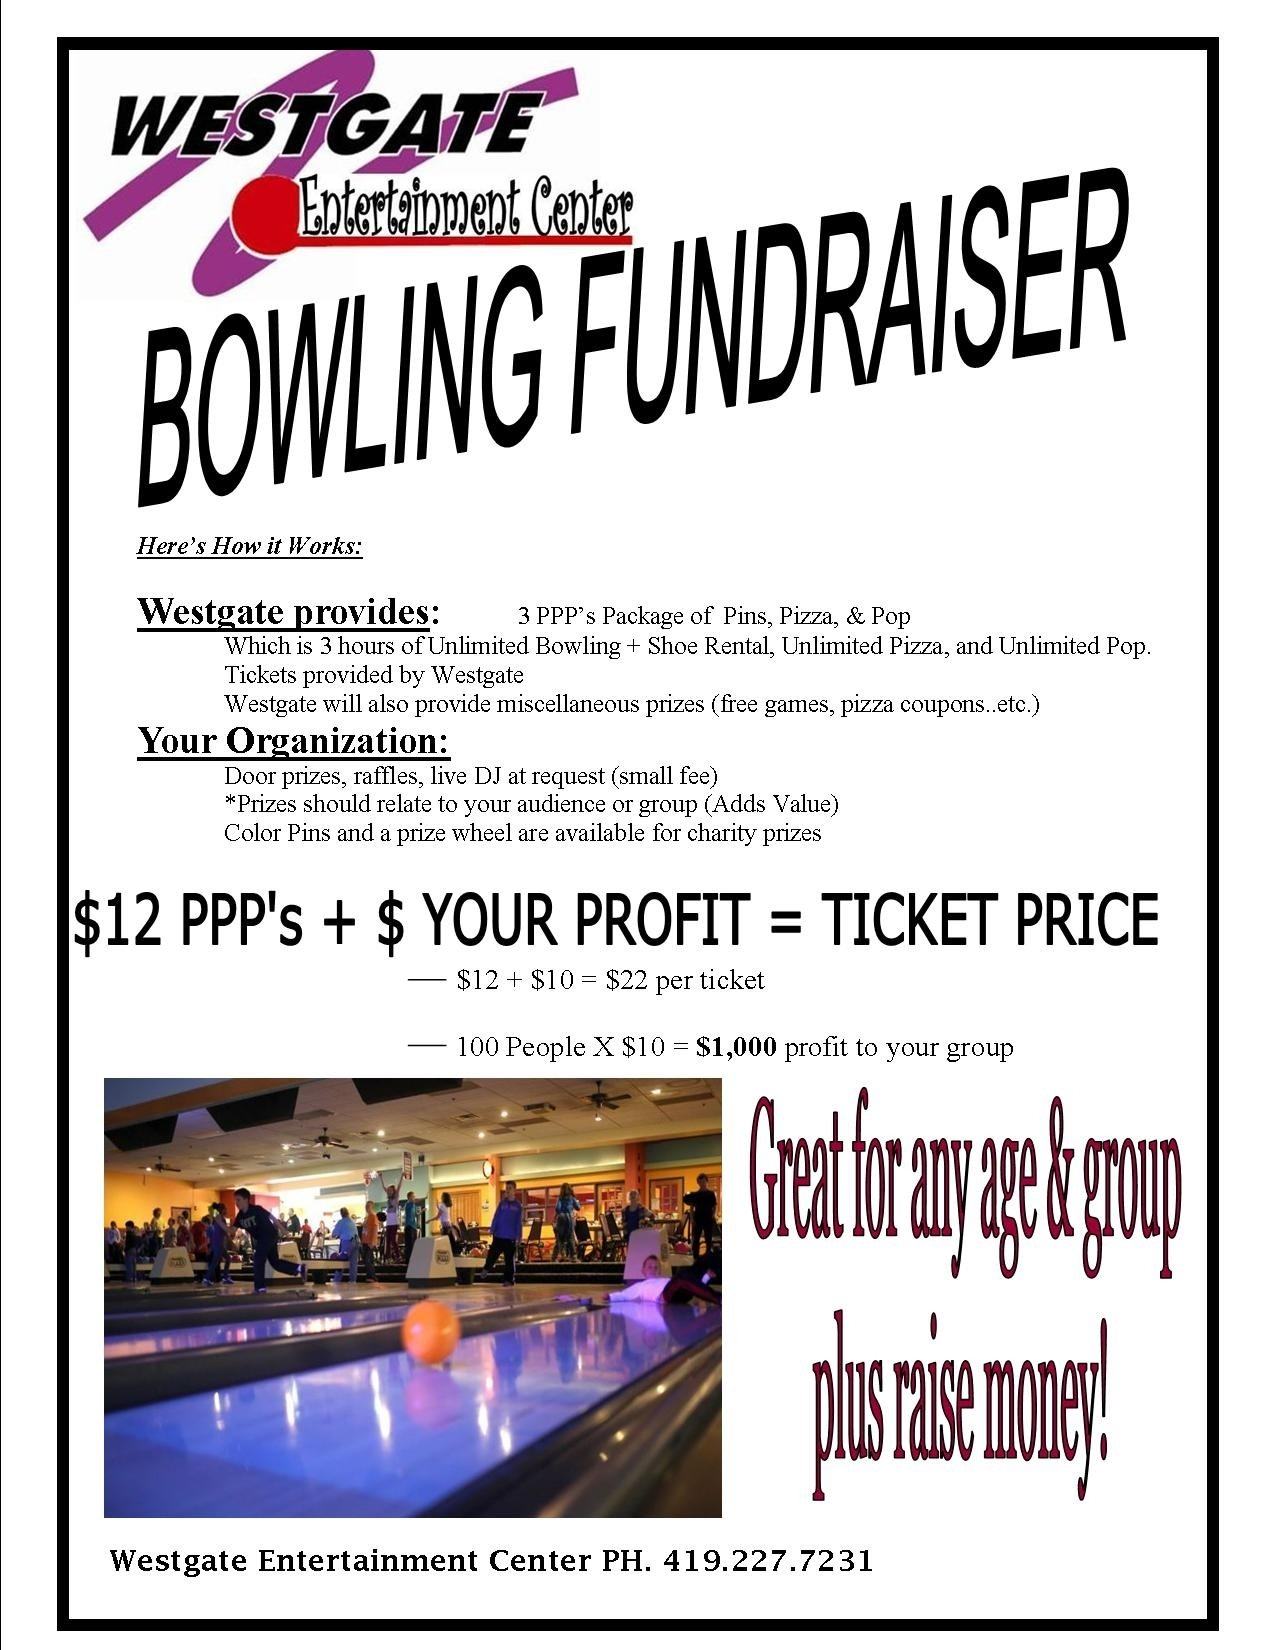 10 Lovely Fundraiser Ideas For Small Groups fundraiser fund raising ideas westgate entertainment center lima 1 2020